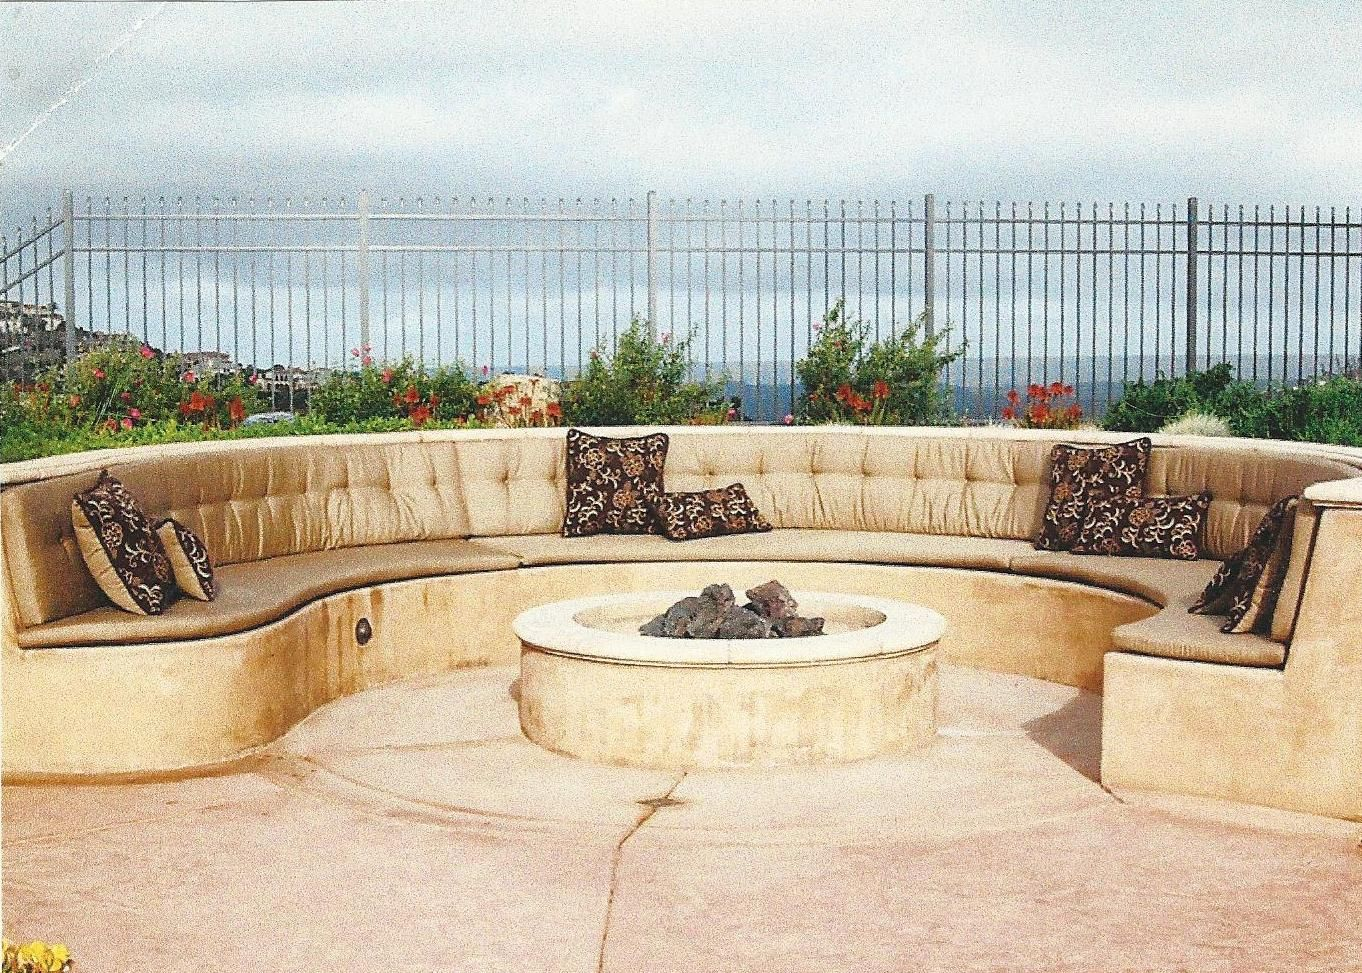 Home | Custom bench cushion, Outdoor furniture sets ... on Curved Patio Ideas id=27933